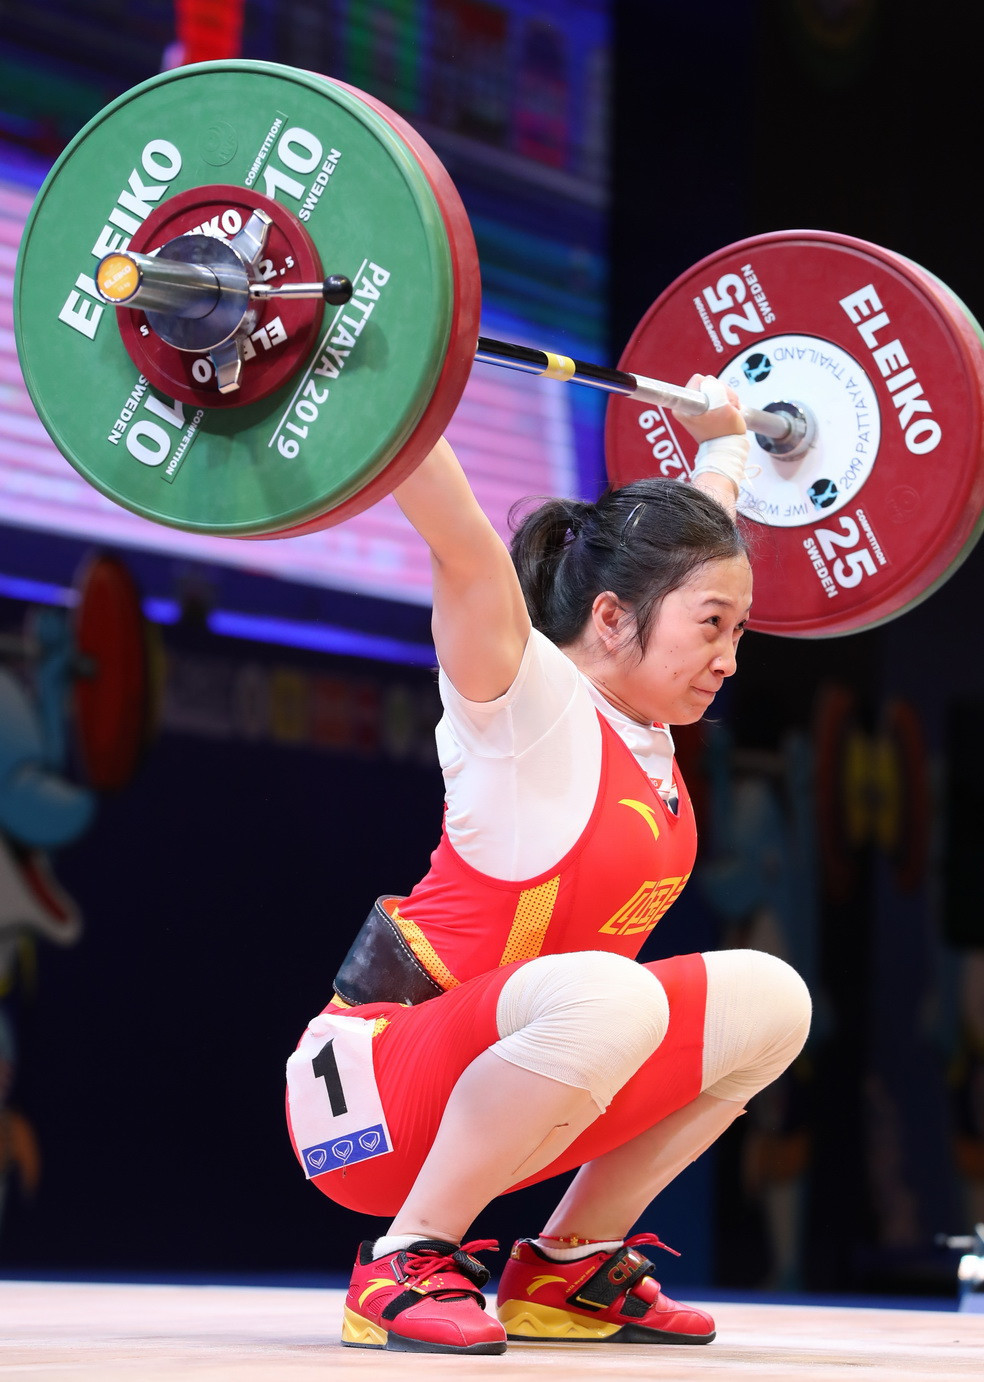 China's Liao Qiuyun came out on top in the women's 55kg event ©IWF